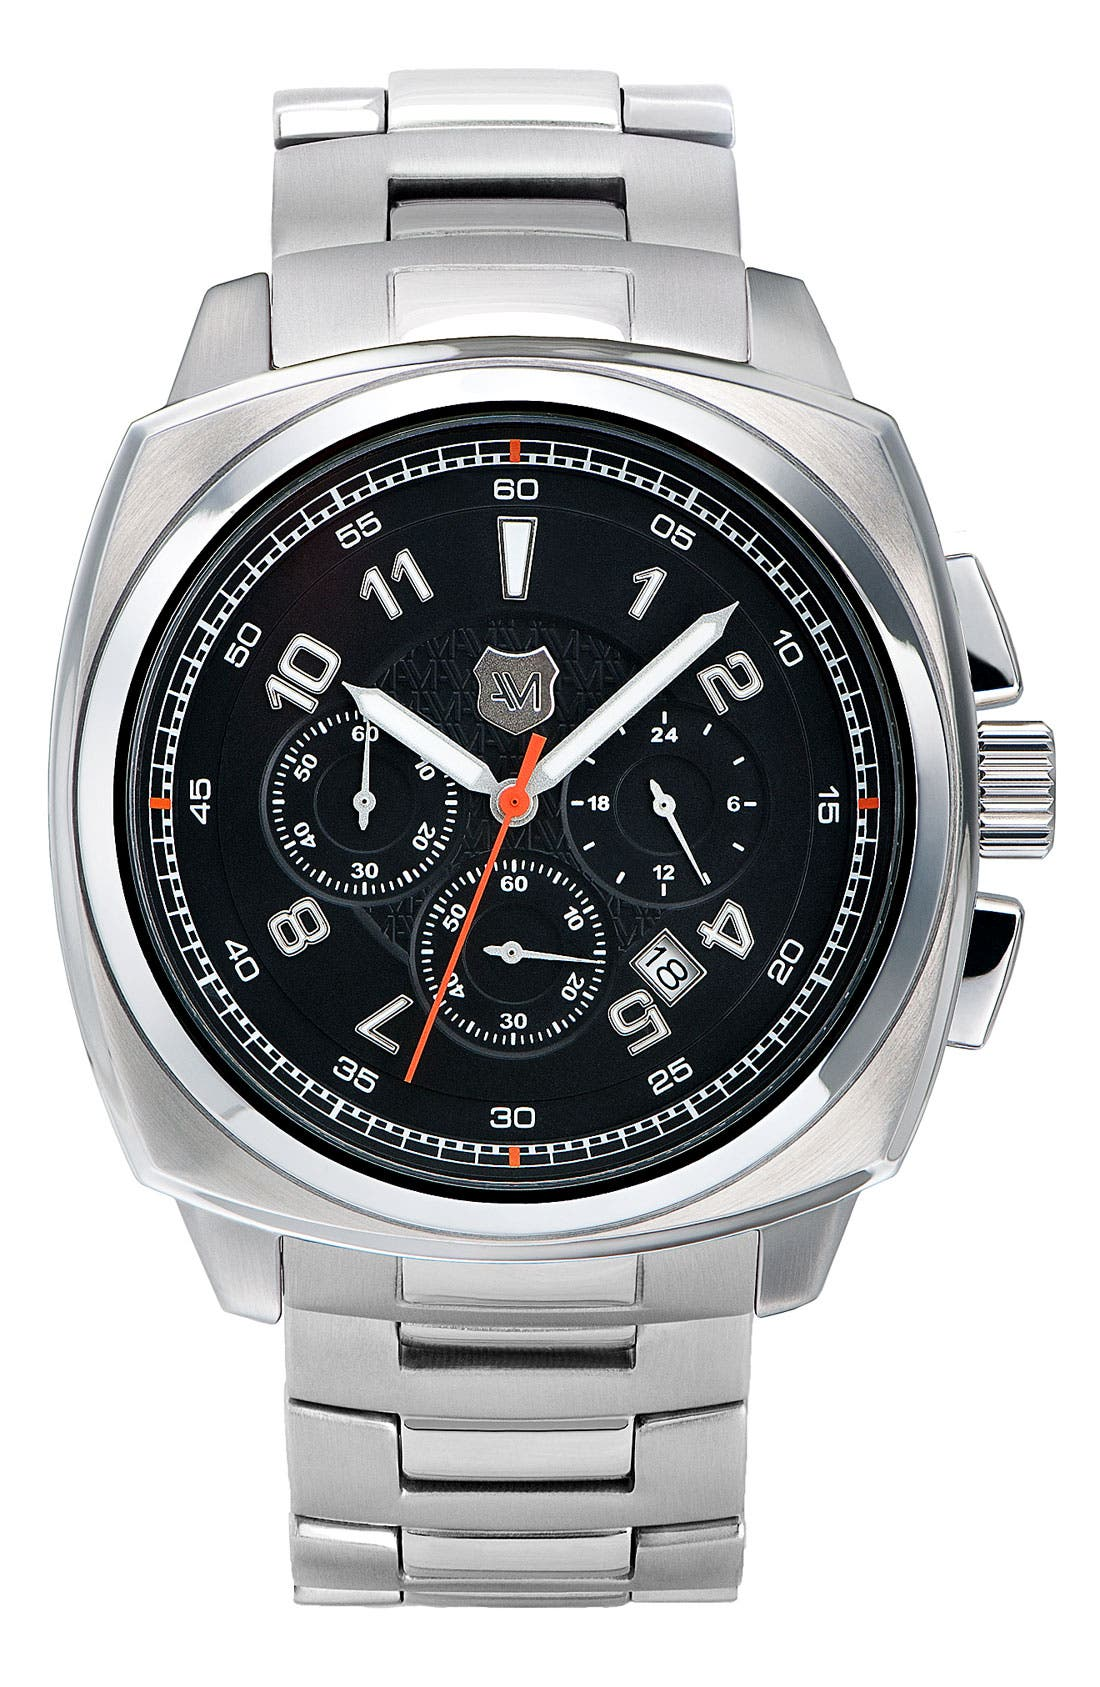 Main Image - Andrew Marc Watches 'Heritage Bomber' Bracelet Watch, 47mm